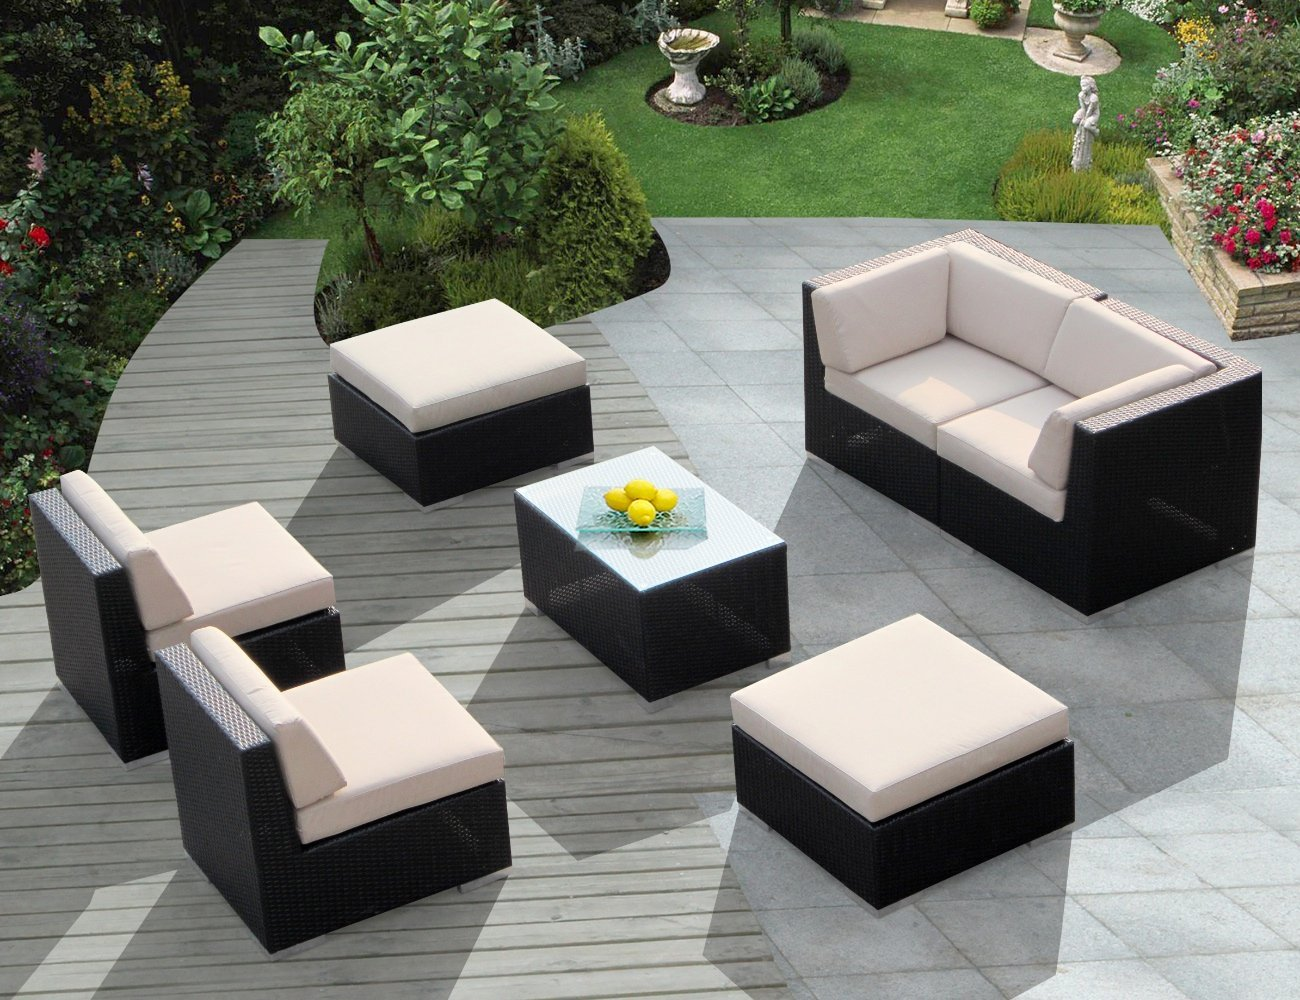 Genuine Ohana Outdoor Wicker Furniture Genuine 7 Piece Ohana Patio Furniture Wicker Couch Set With Beige Cushion